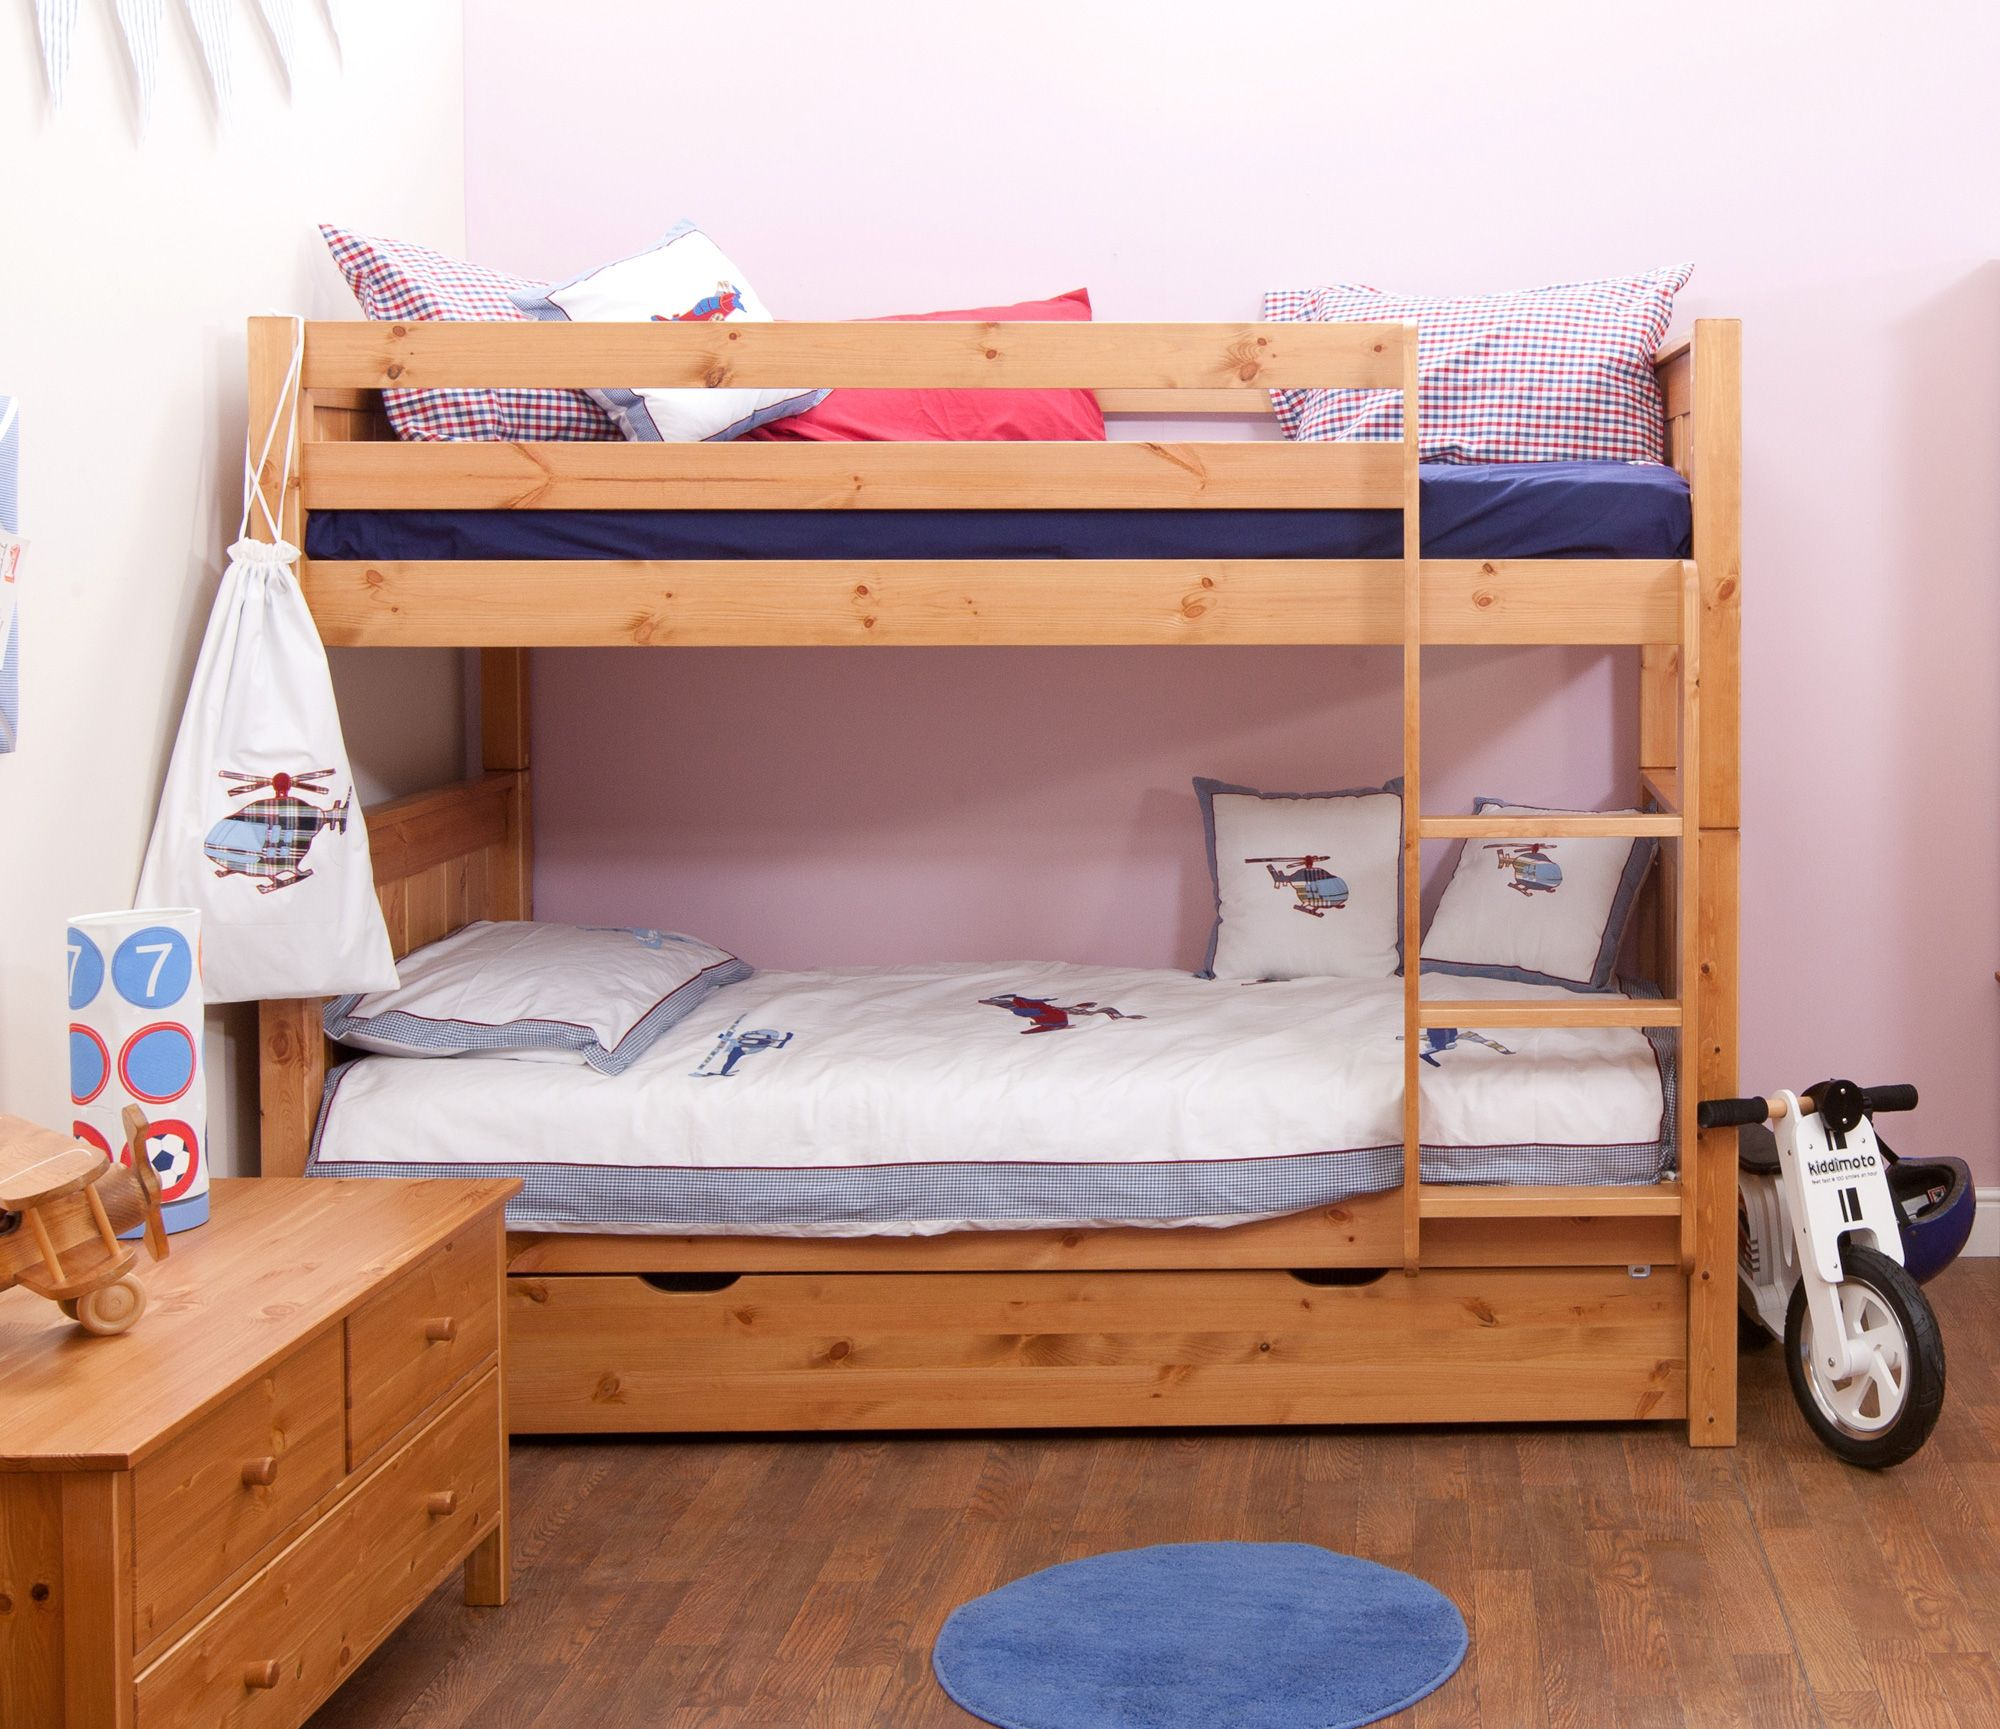 Stompa Classic Bunk Bed Stompa Ck Honey Pine Bunk Bed Looking Forward To Seeing The